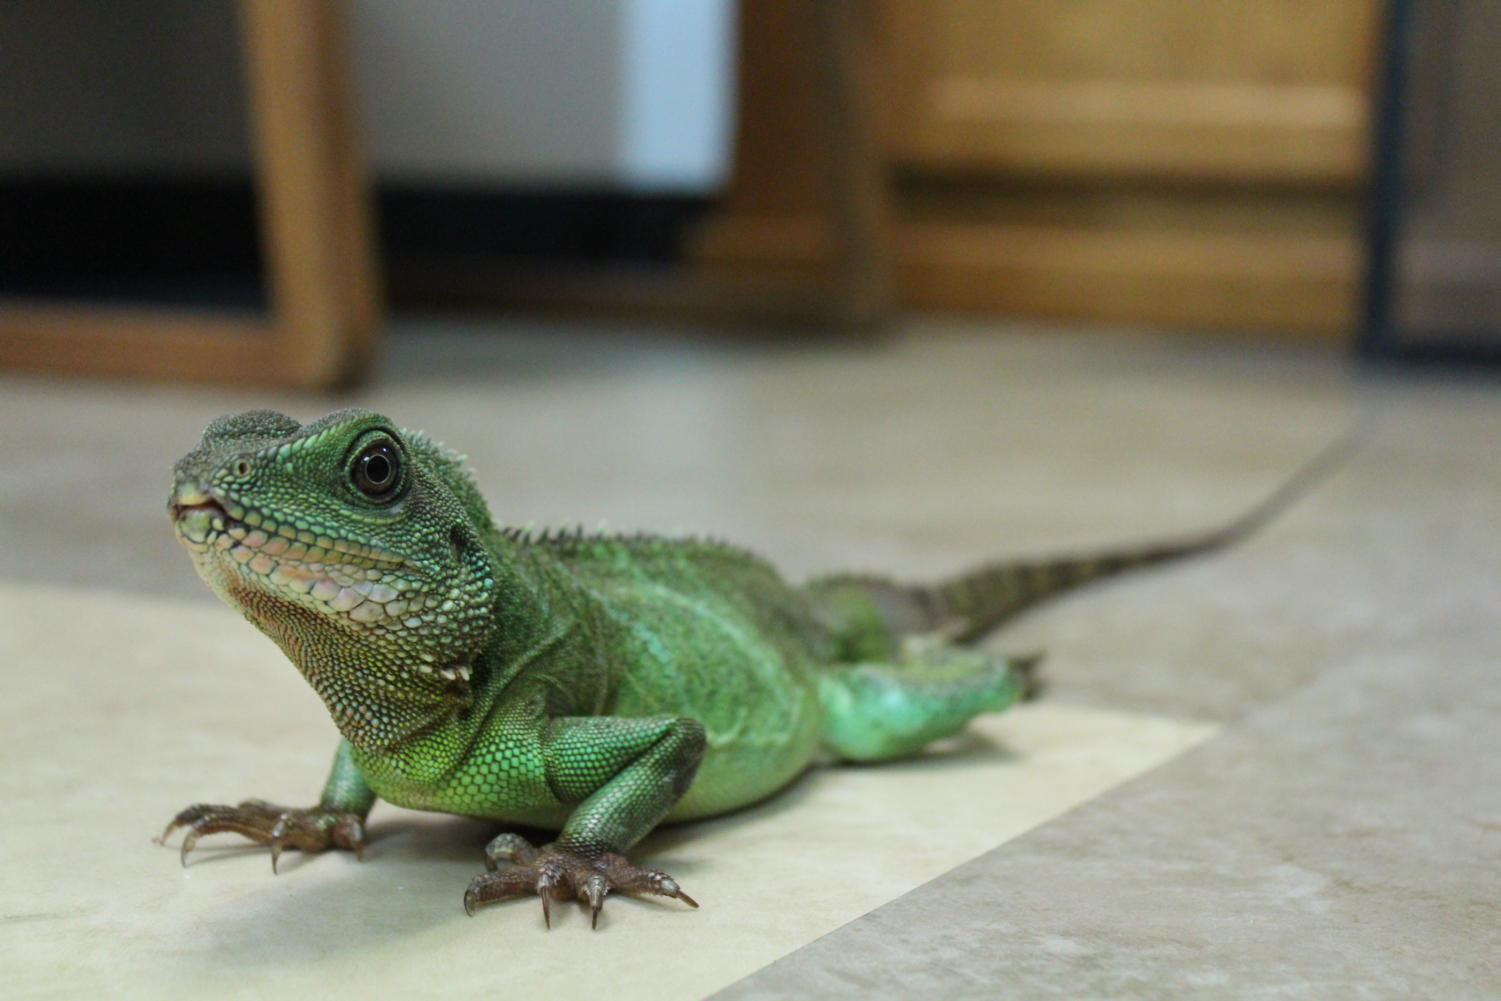 You can de-stress with this calming therapy lizard in Room 400B. Photo by Connor Callahan